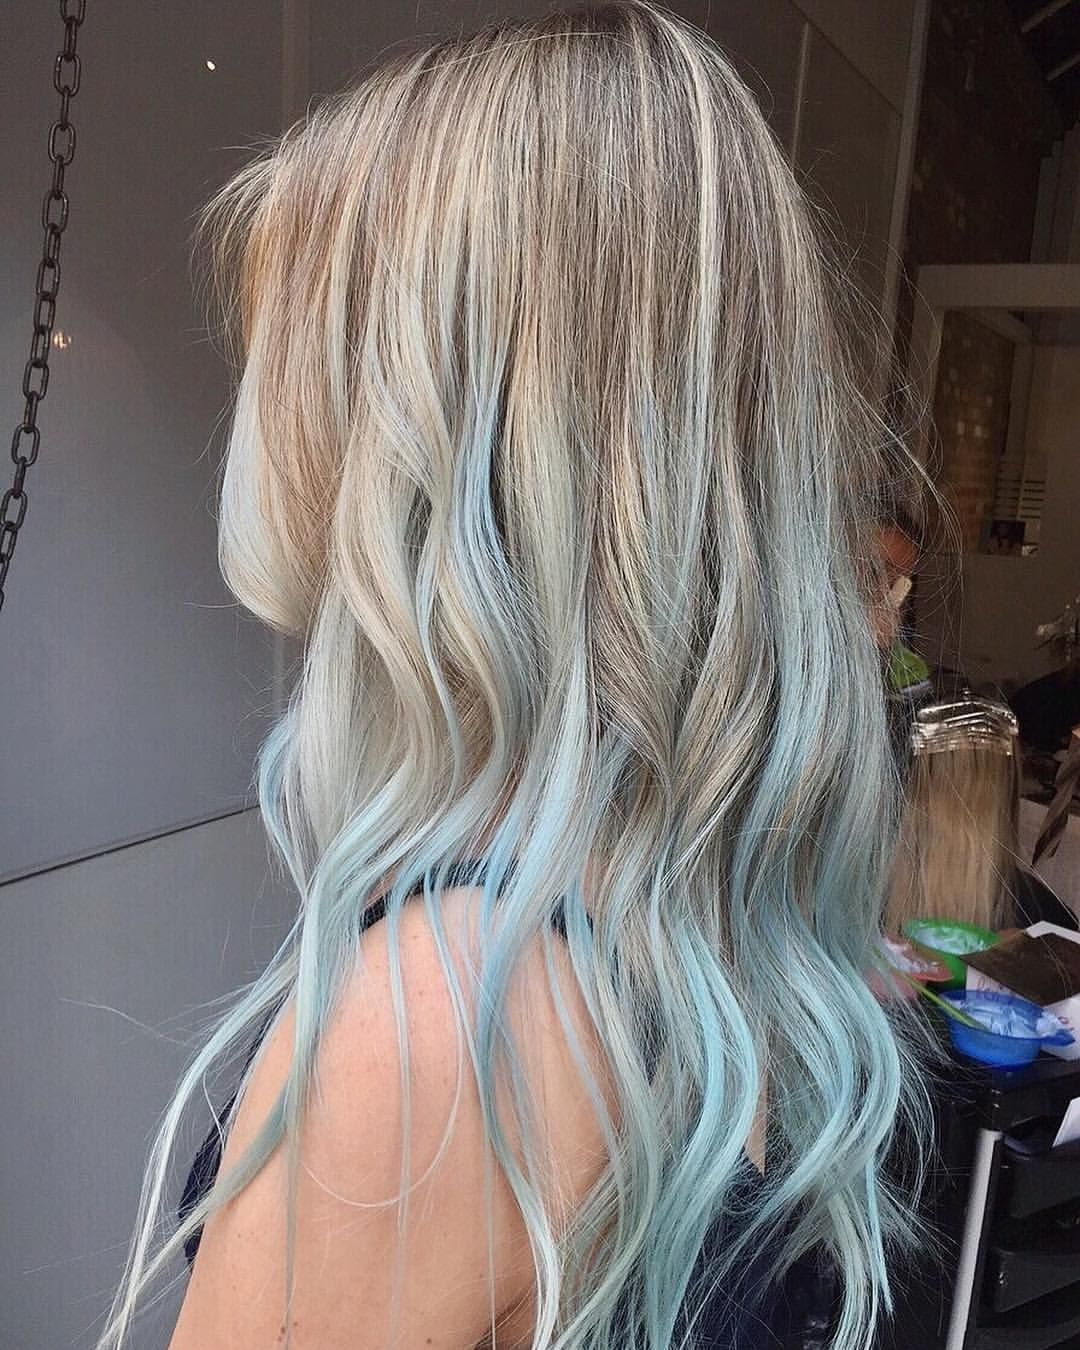 Instagram Post By Blonde Hair Colour Studios Nov 22 2017 At 9 09am Utc 200 Likes 7 Comments Blond In 2020 Blonde And Blue Hair Hair Dye Tips Ombre Hair Blonde